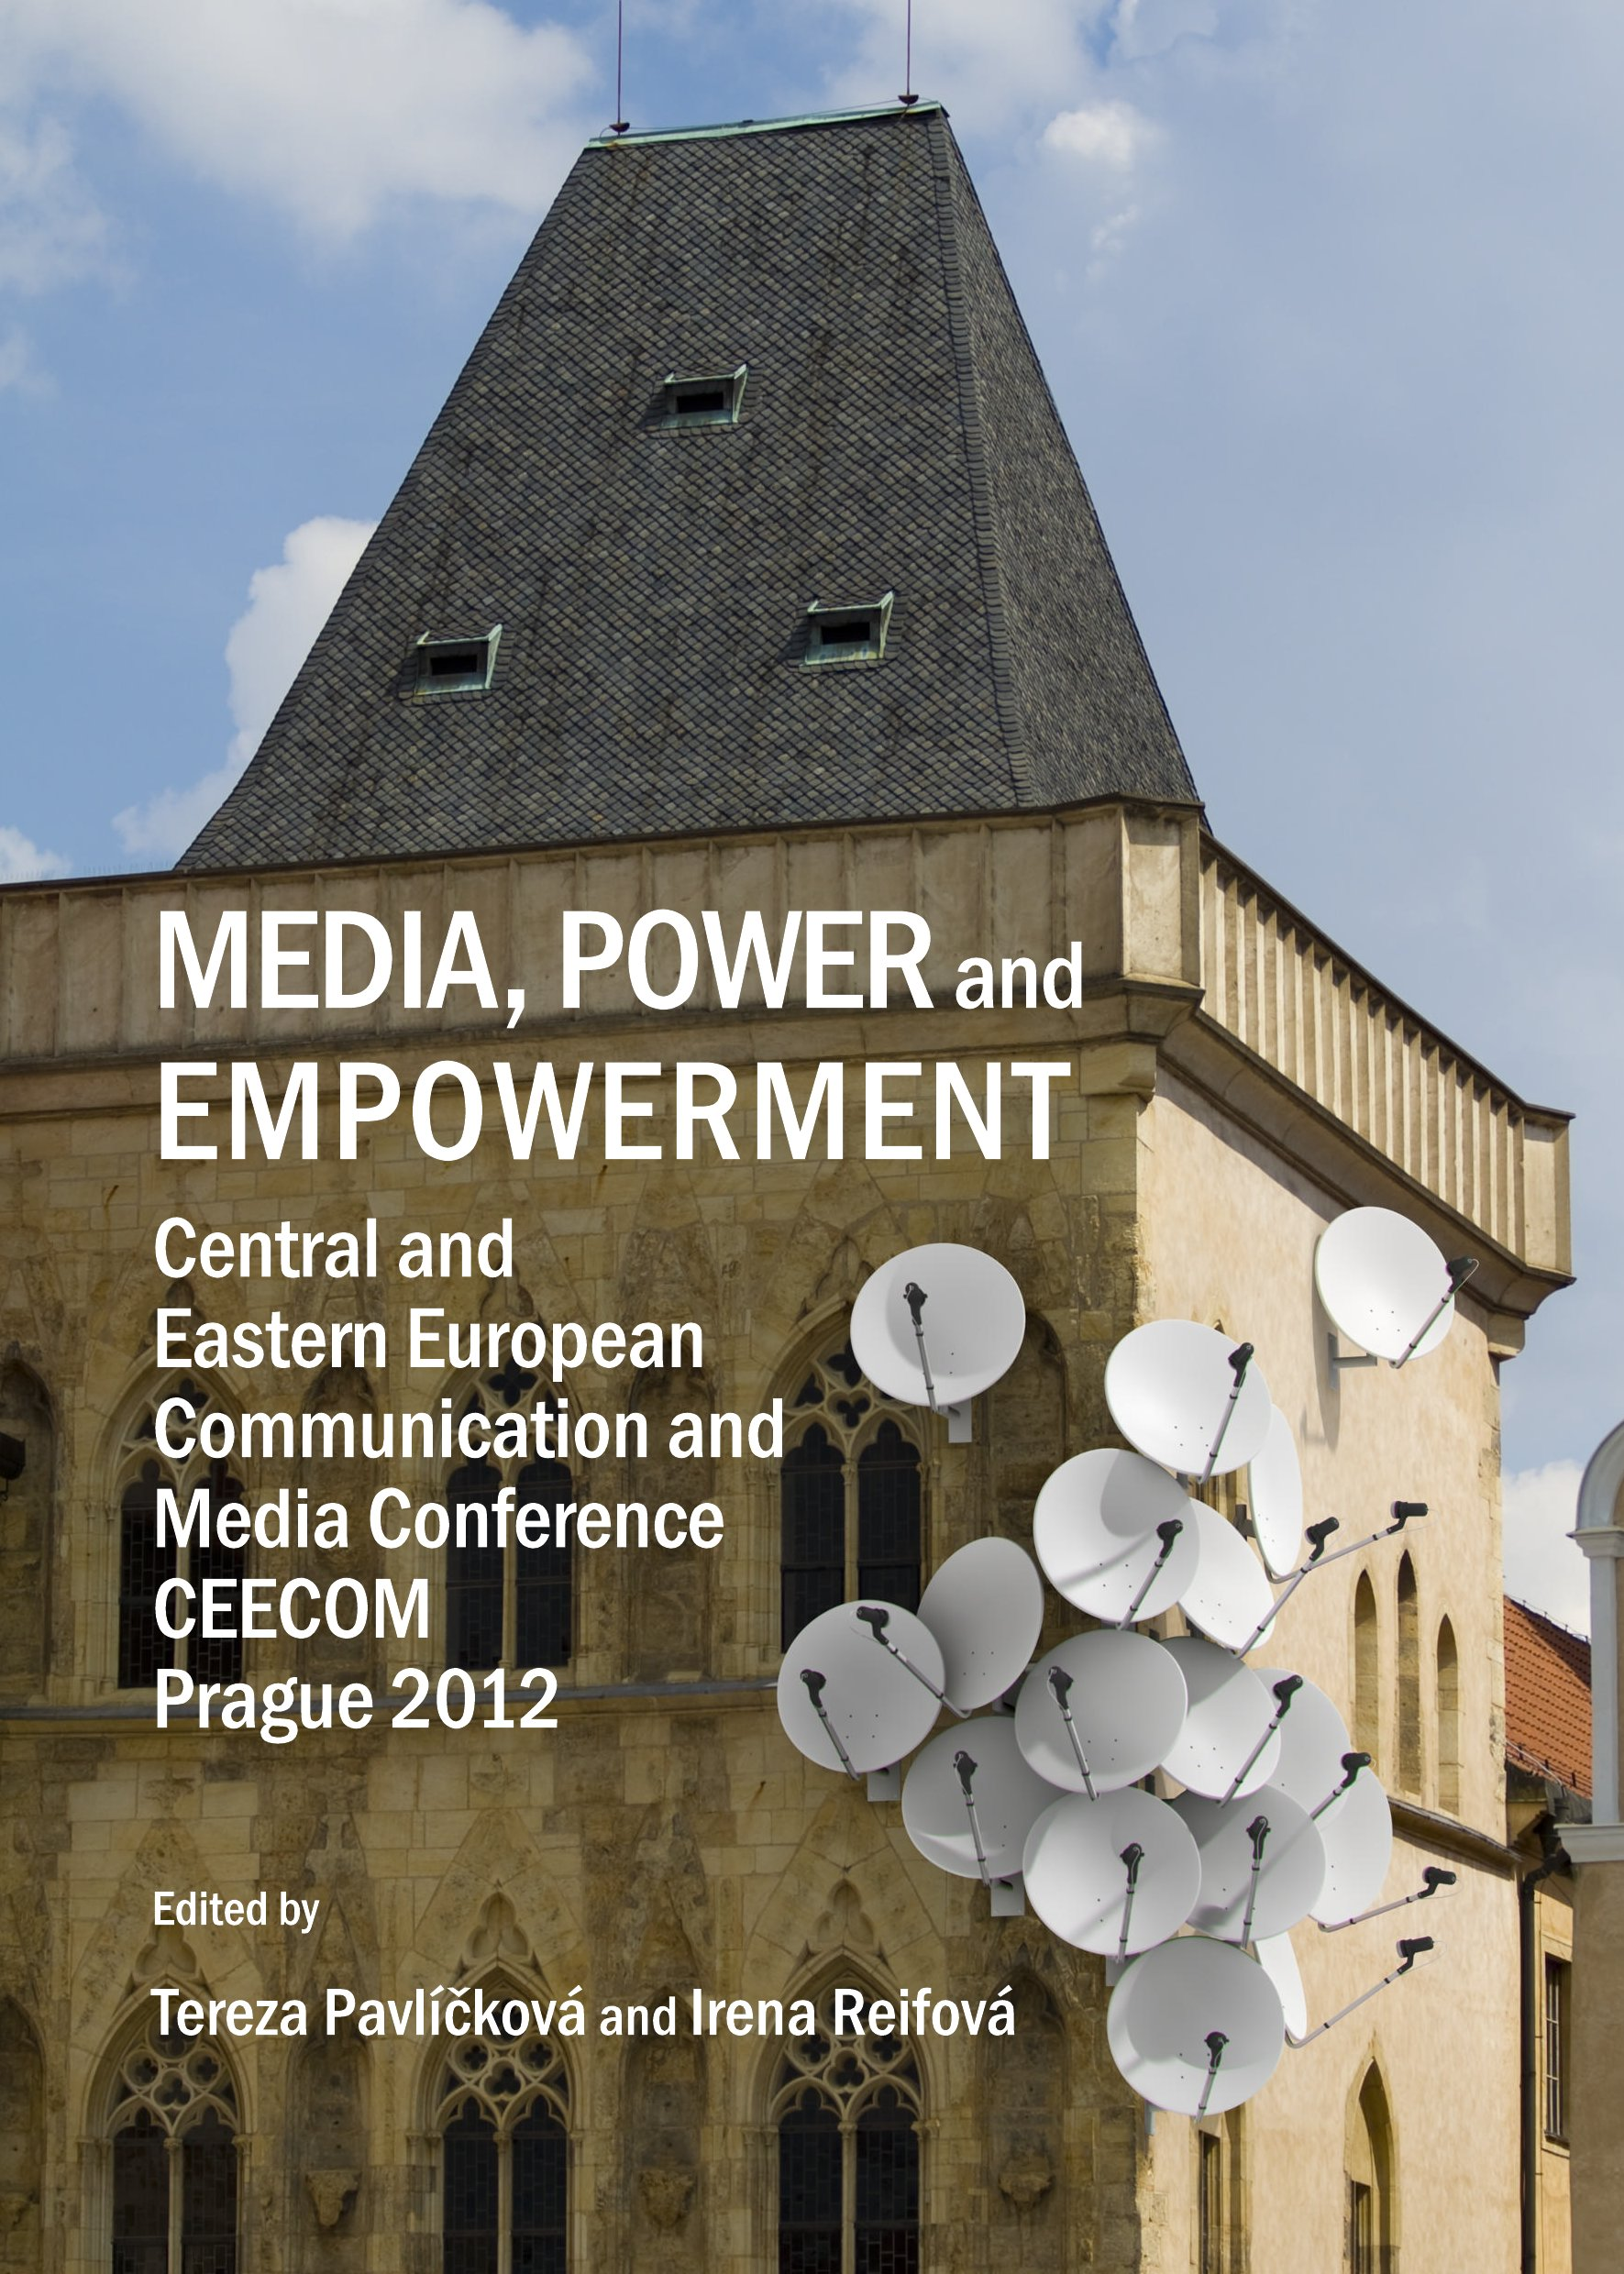 Media, Power and Empowerment: Central and Eastern European Communication and Media Conference CEECOM Prague 2012